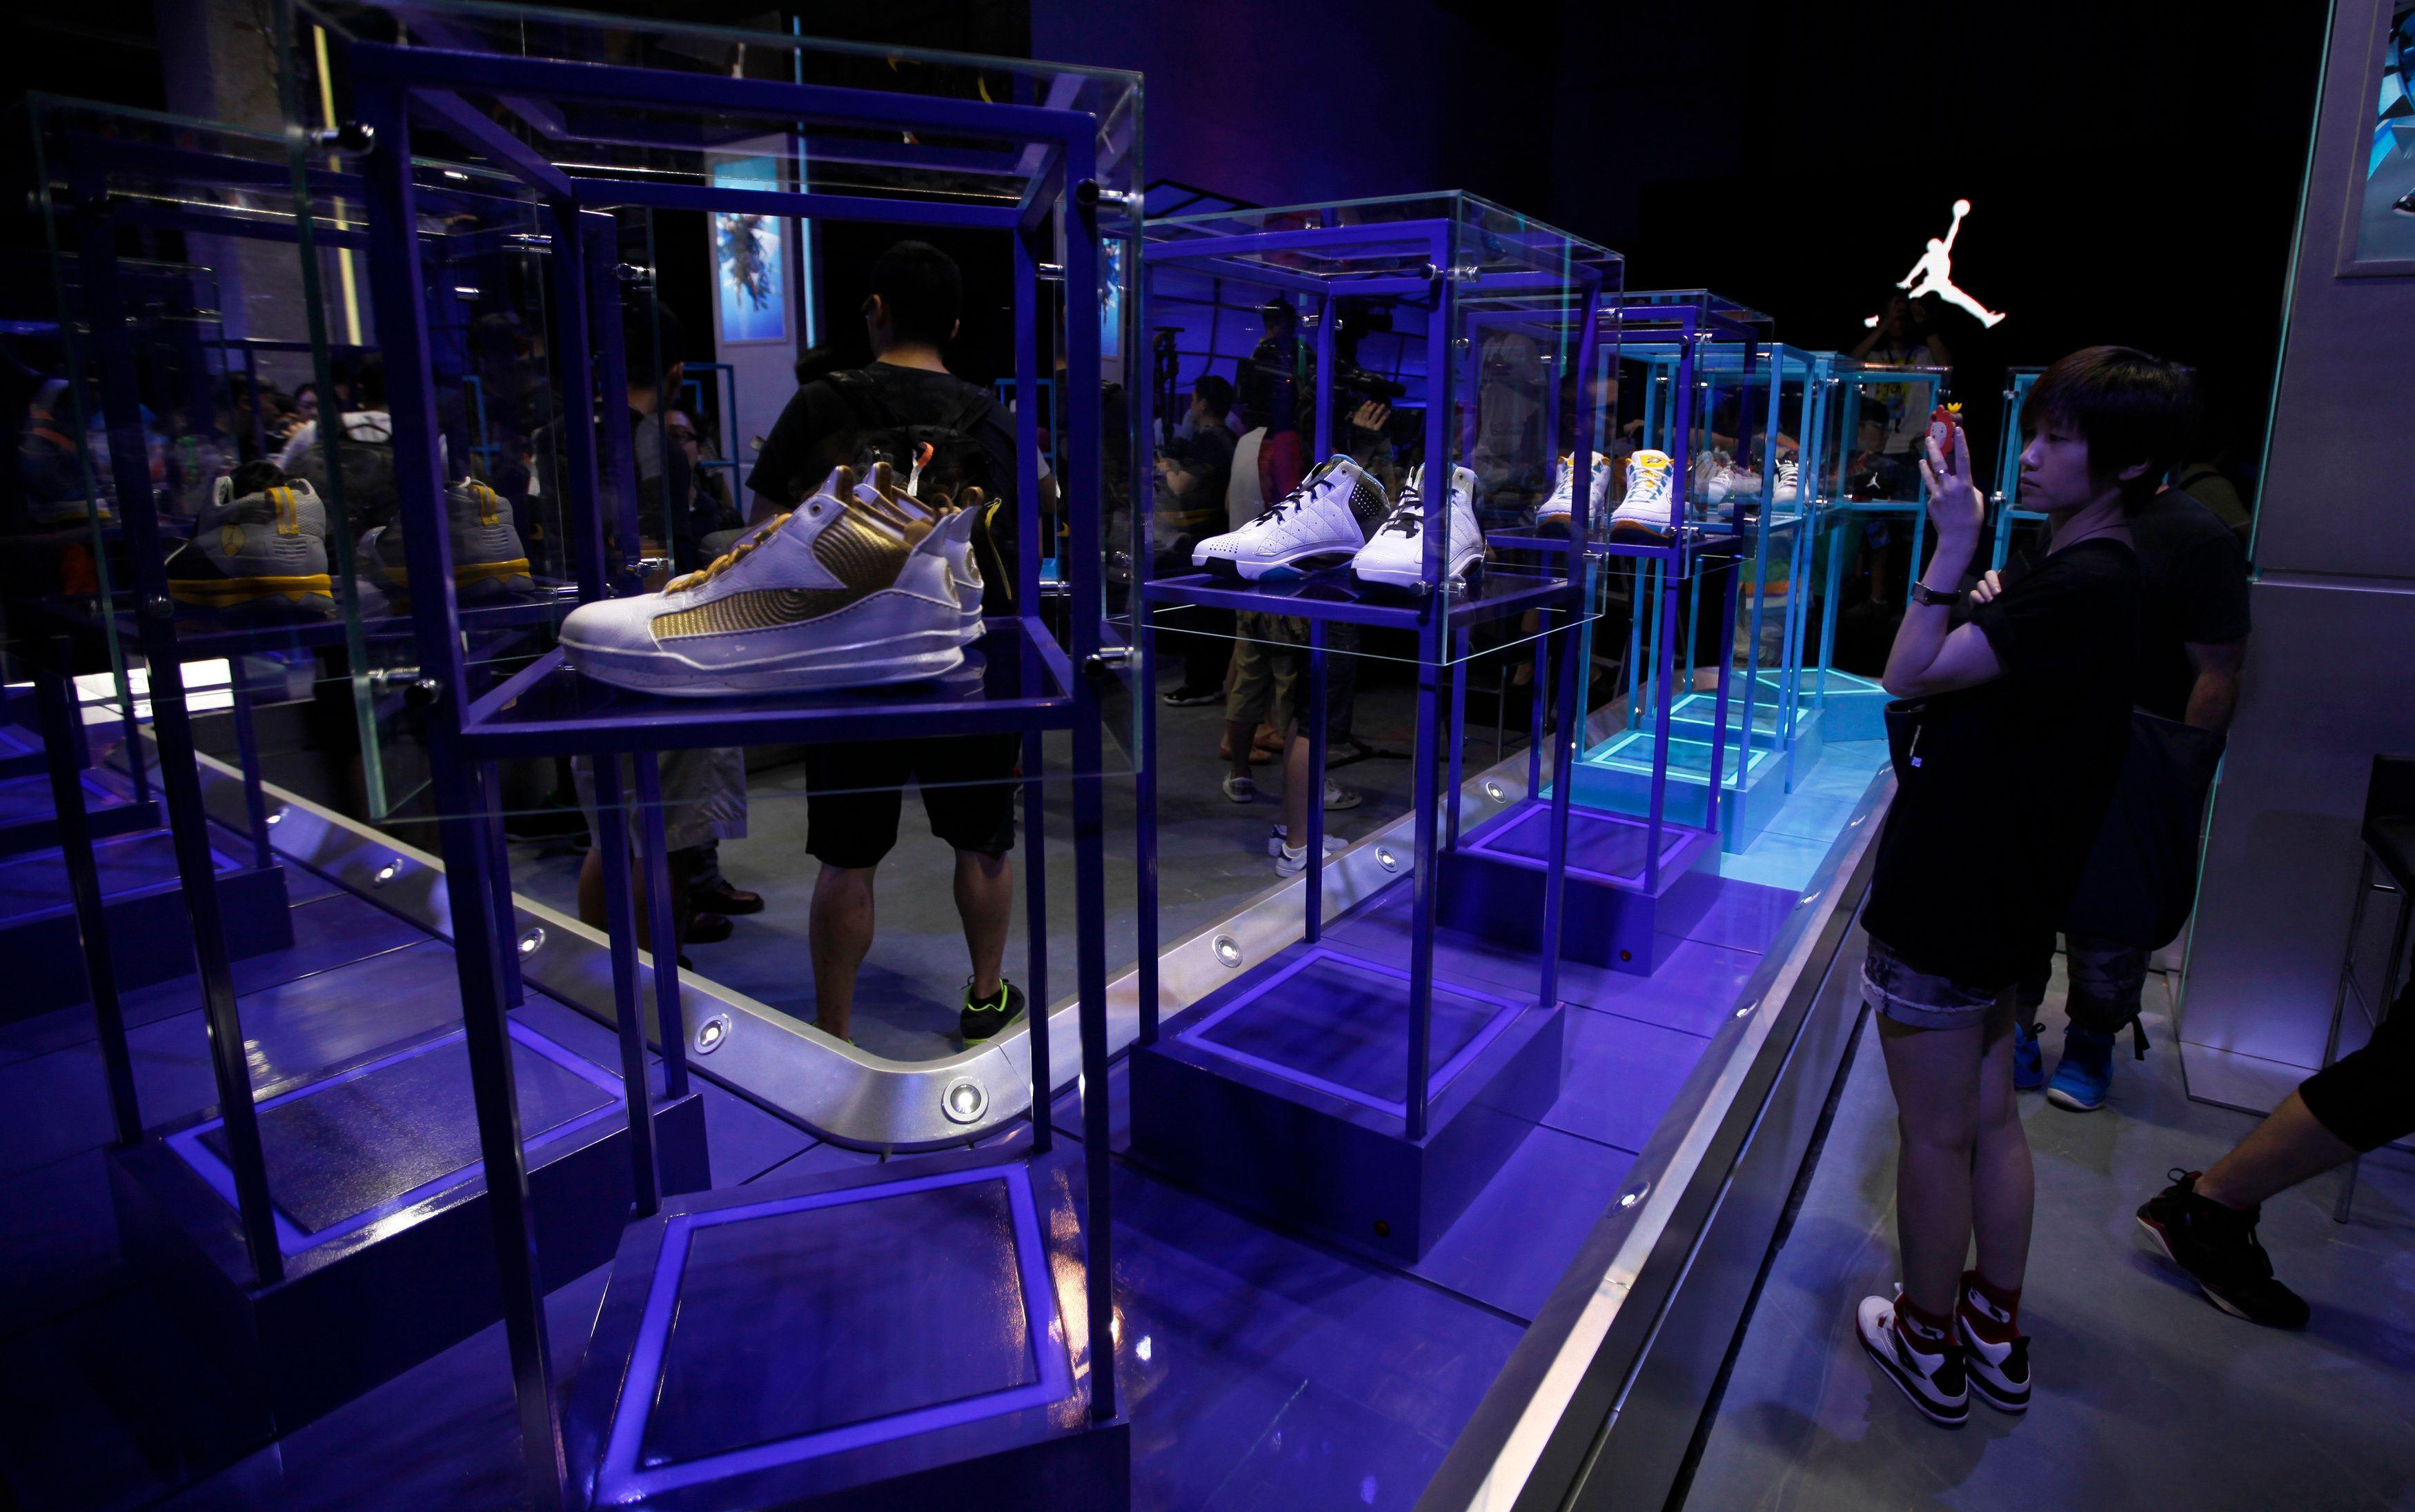 China could be the next massive sneaker frontier: Cowen